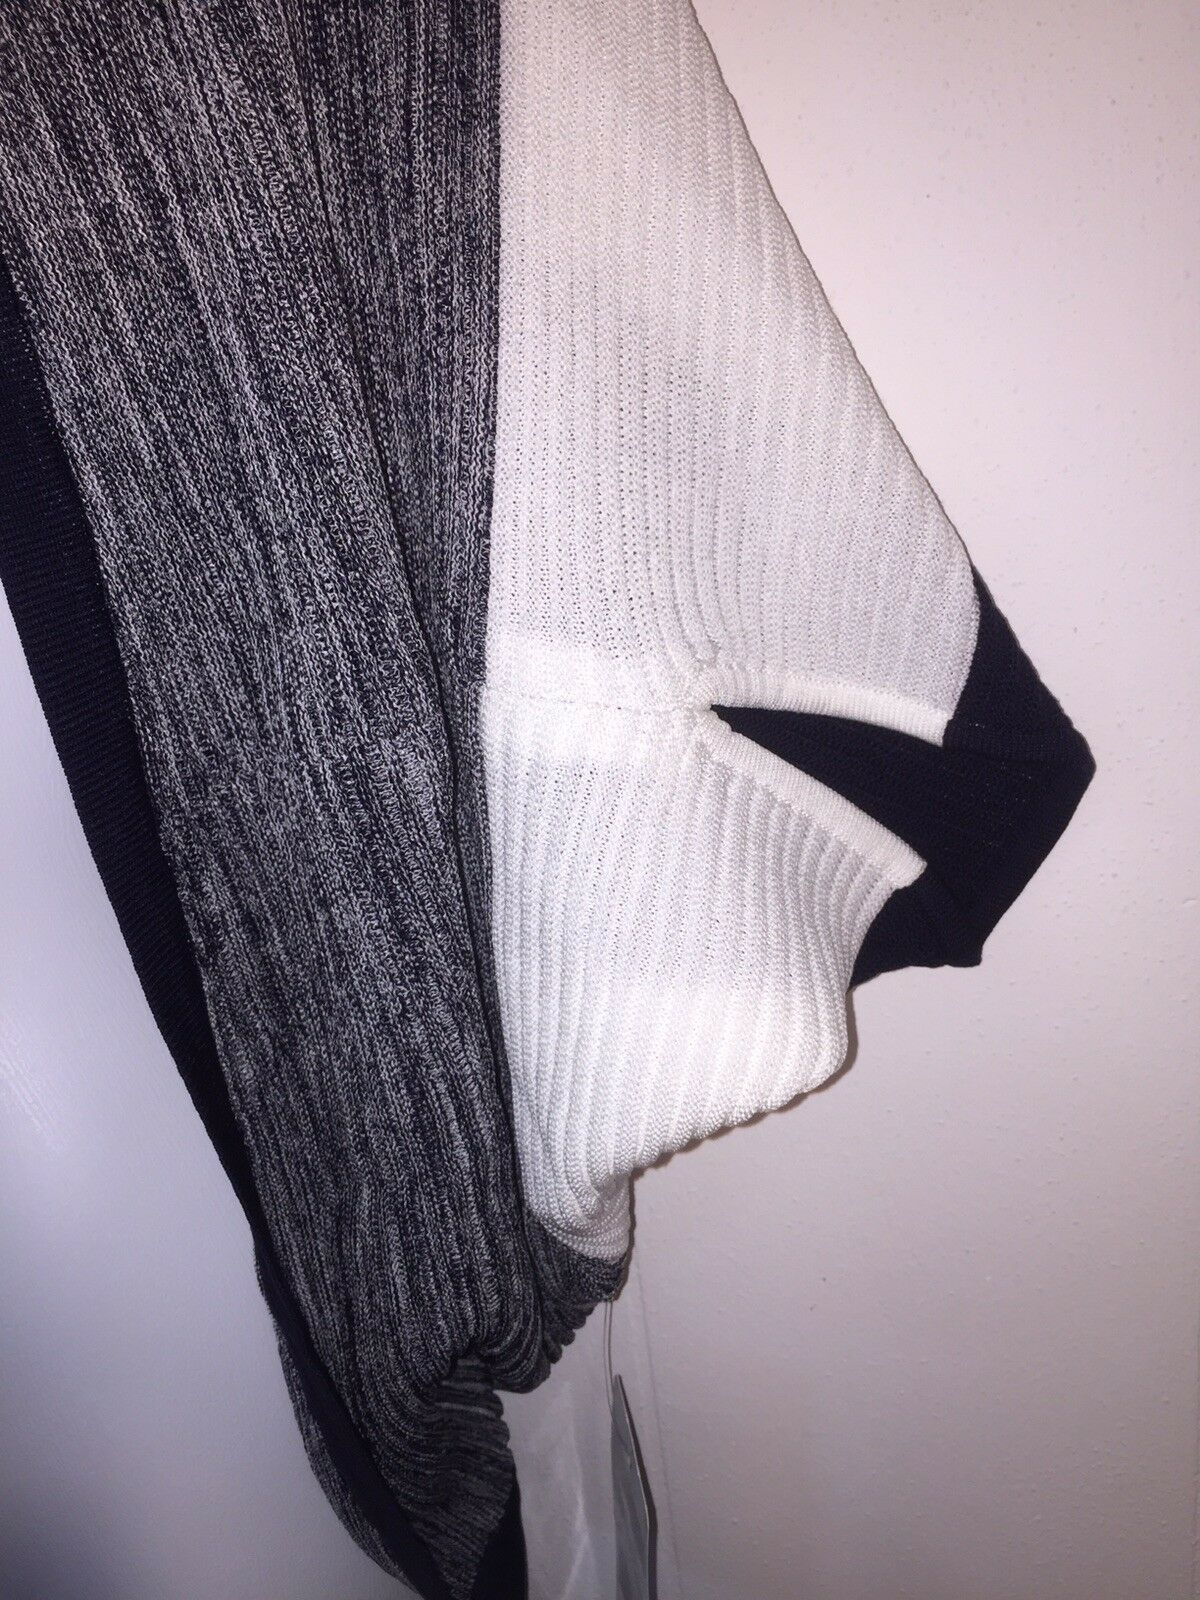 348 EXCLUSIVELY MISOOK Navy & White Striped Unique Cardigan Cardigan Cardigan Sweater NWT S cc28dc